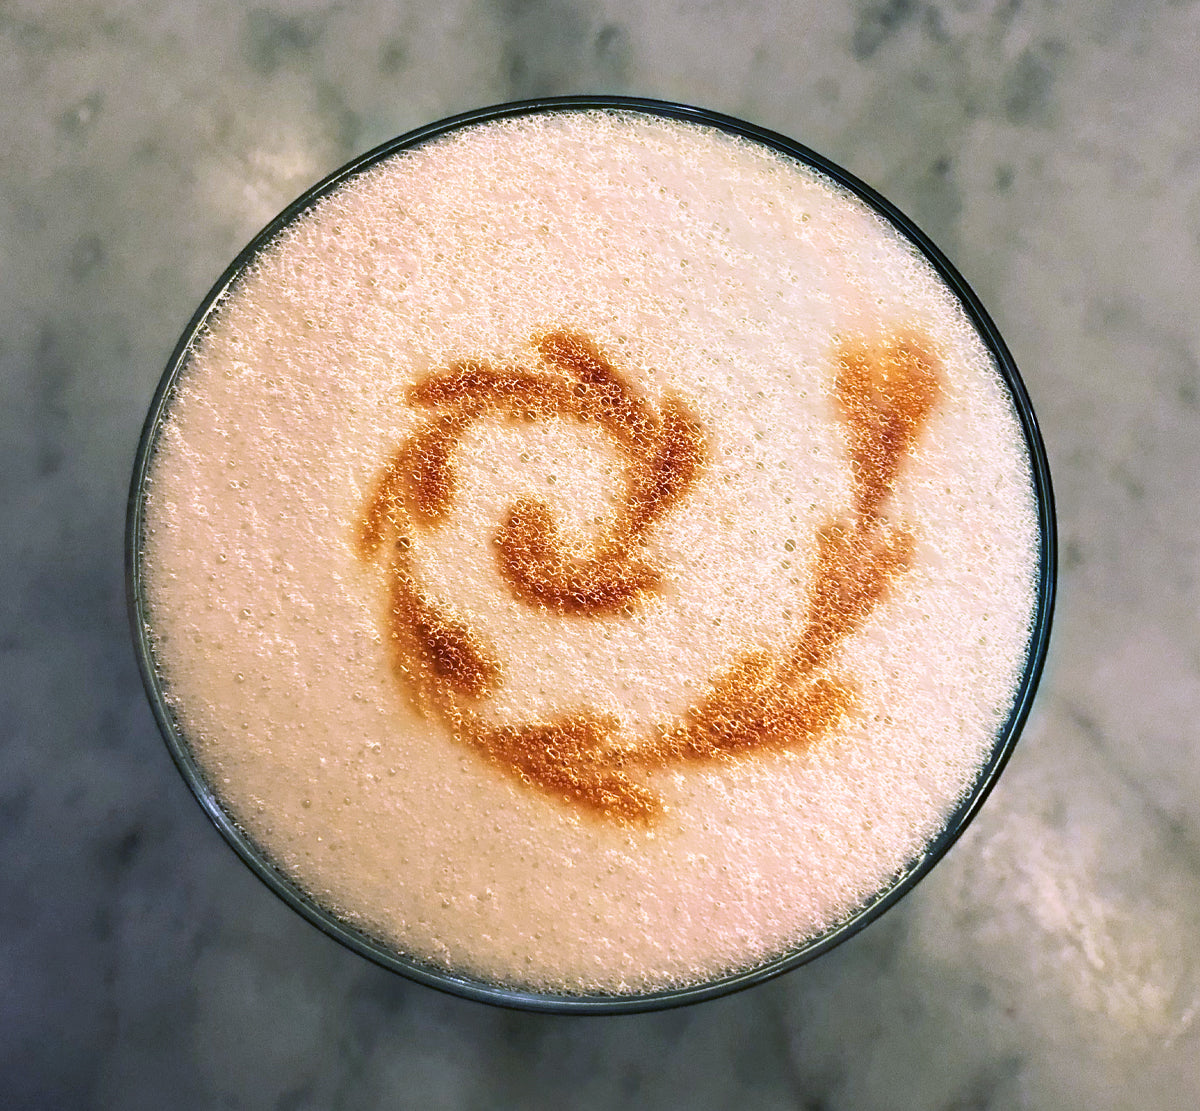 Rise-cocktail-lil-gem-oats-fall-drink-tasty-whiskey-nitro-cold-brew-coffee-rise